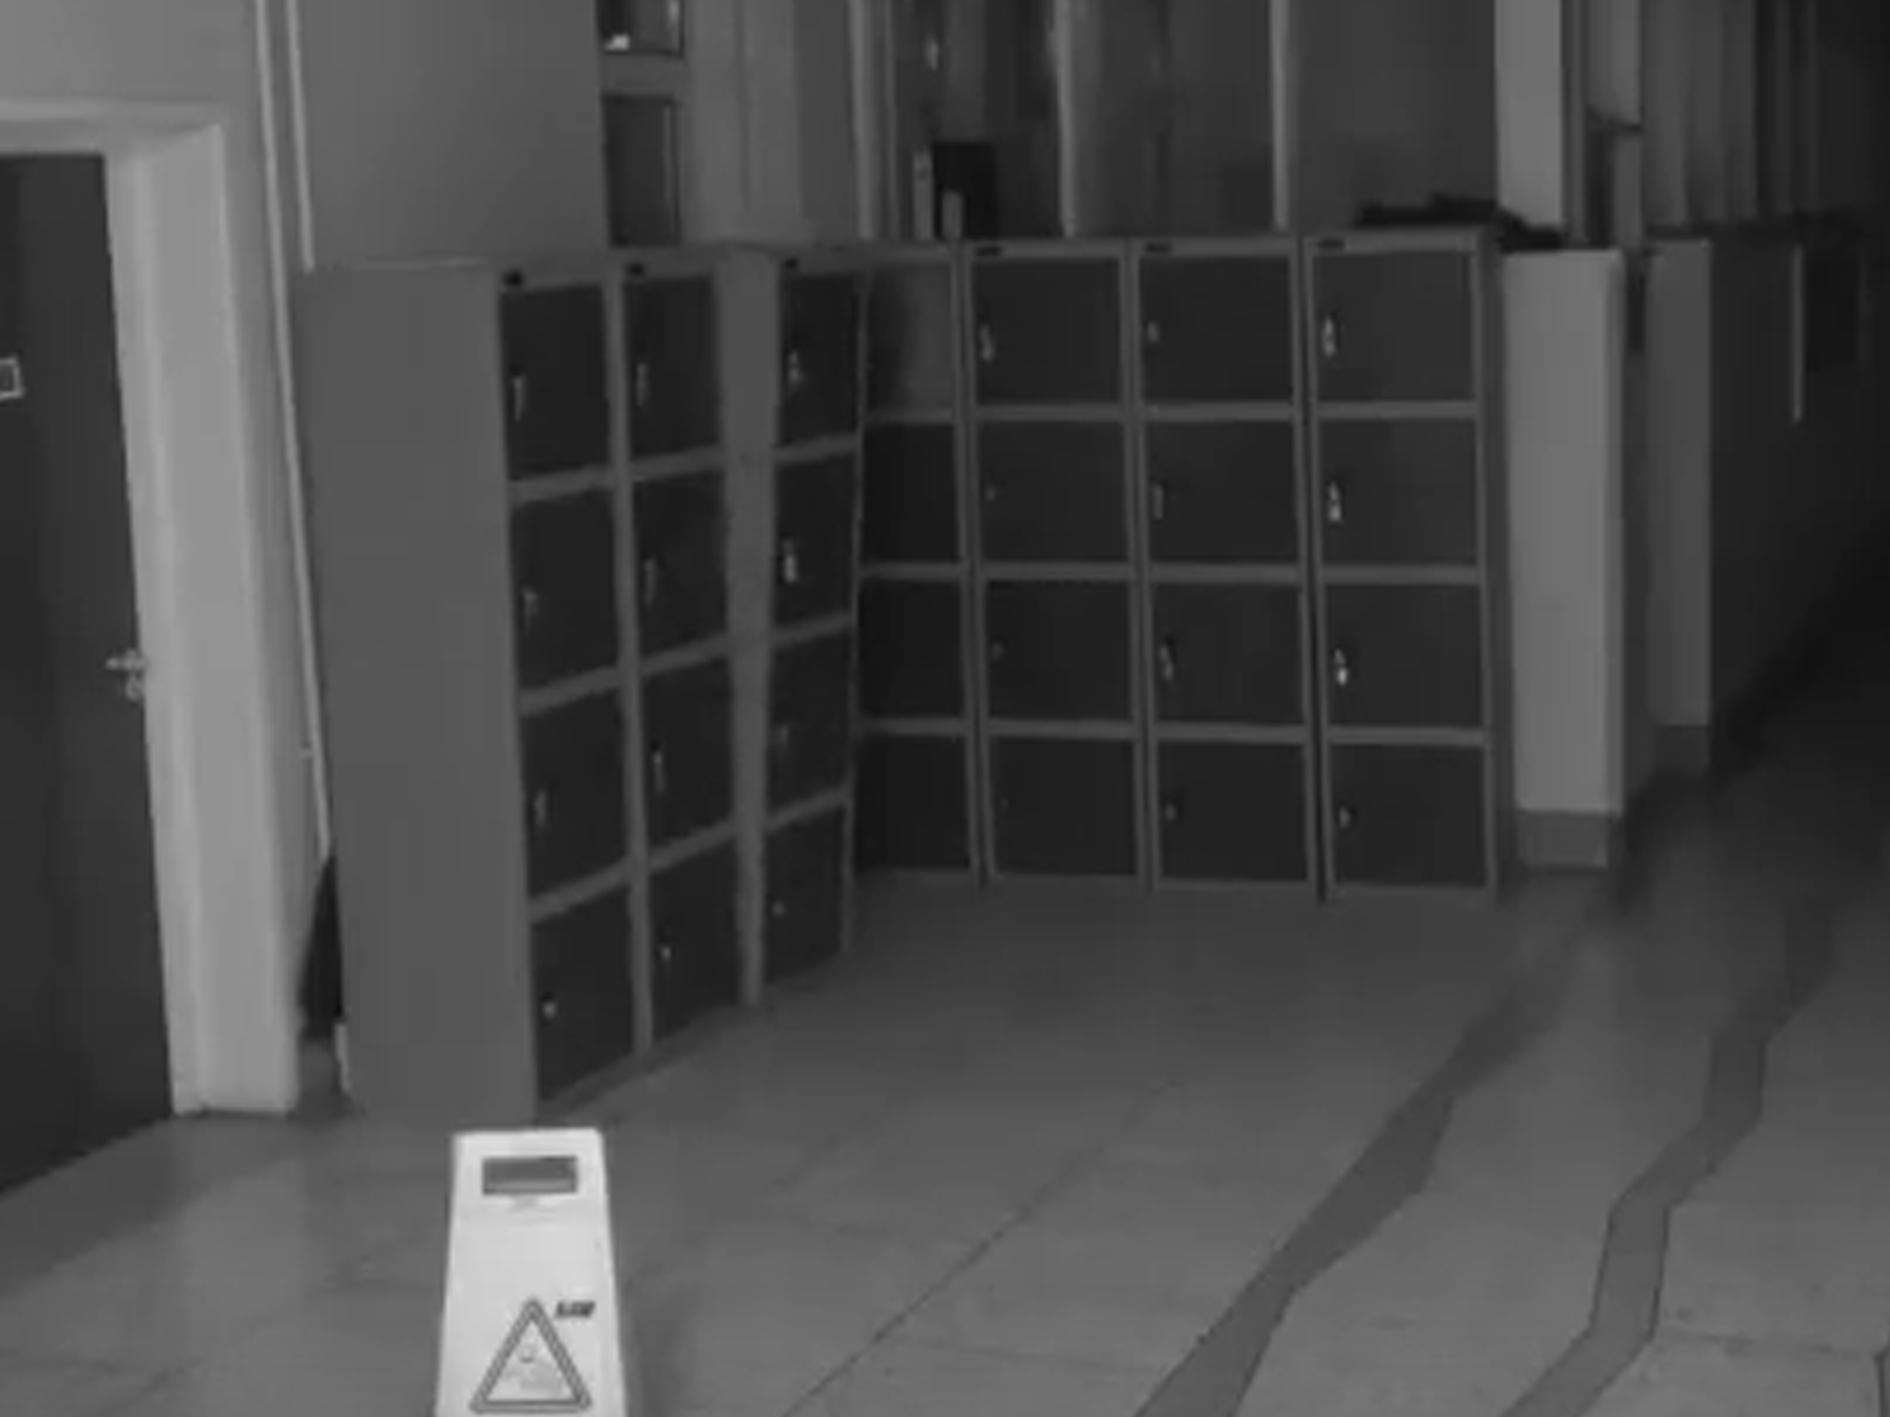 School CCTV Camera Captures Terrifying Ghost In Hallway lockers shaking 1